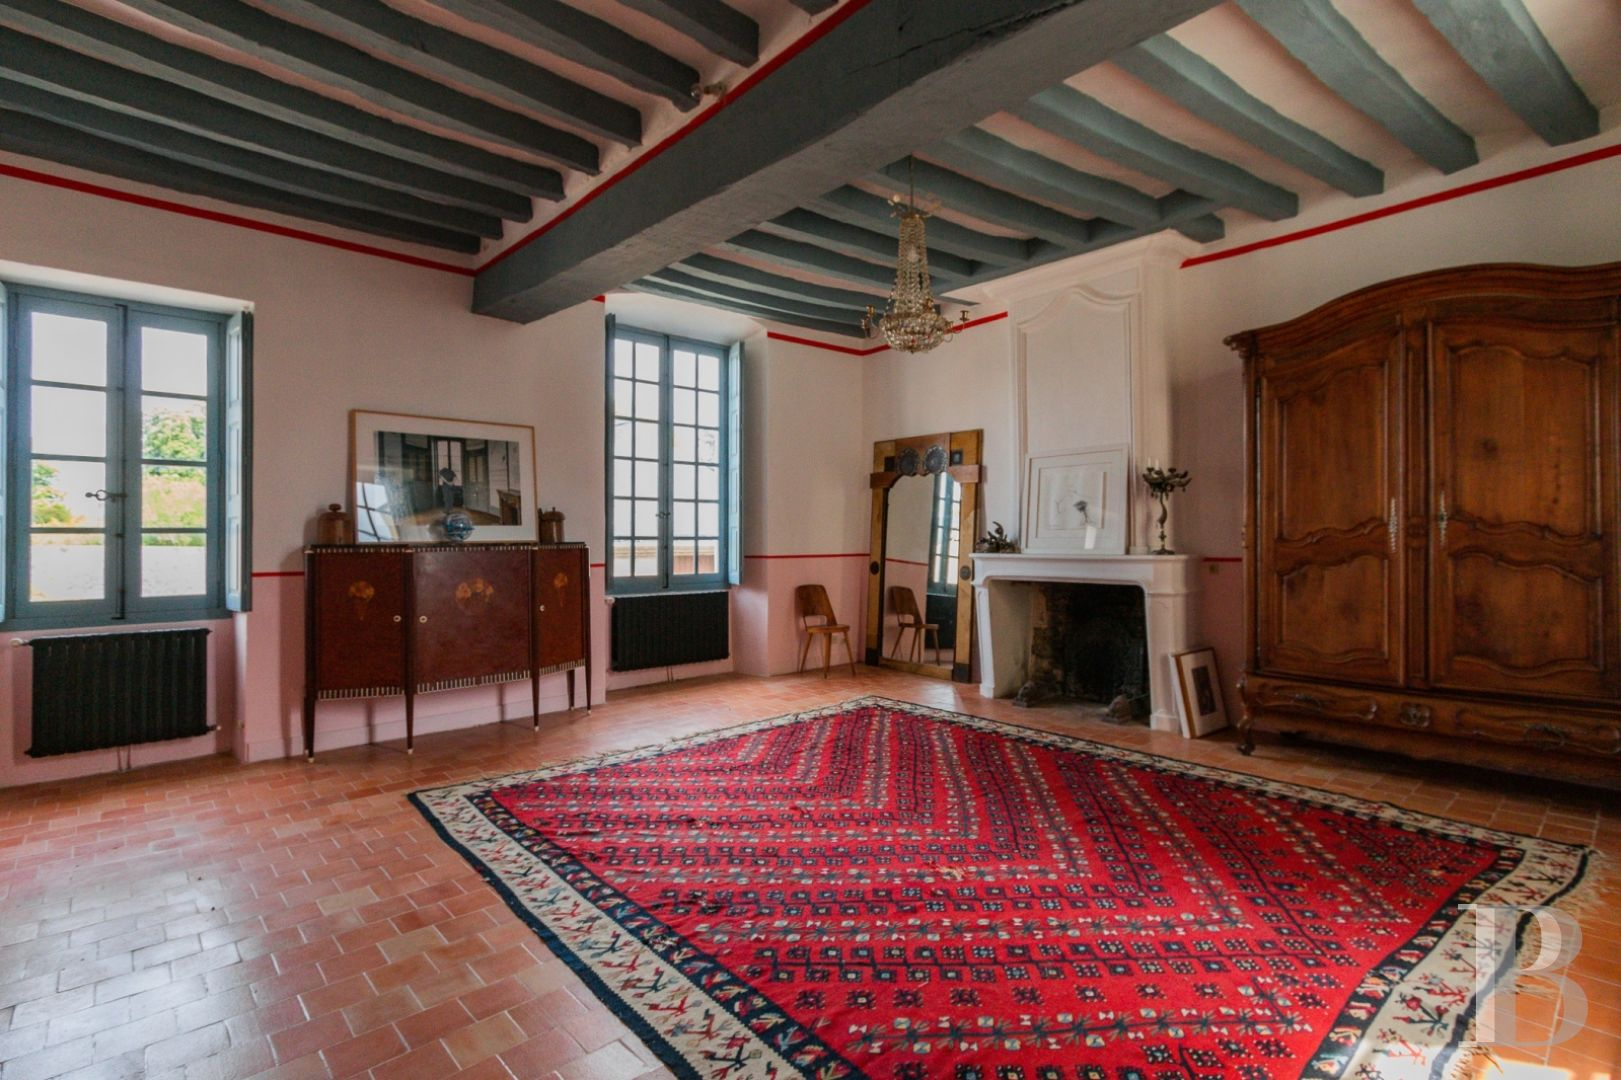 mansion houses for sale France pays de loire mansion house - 8 zoom